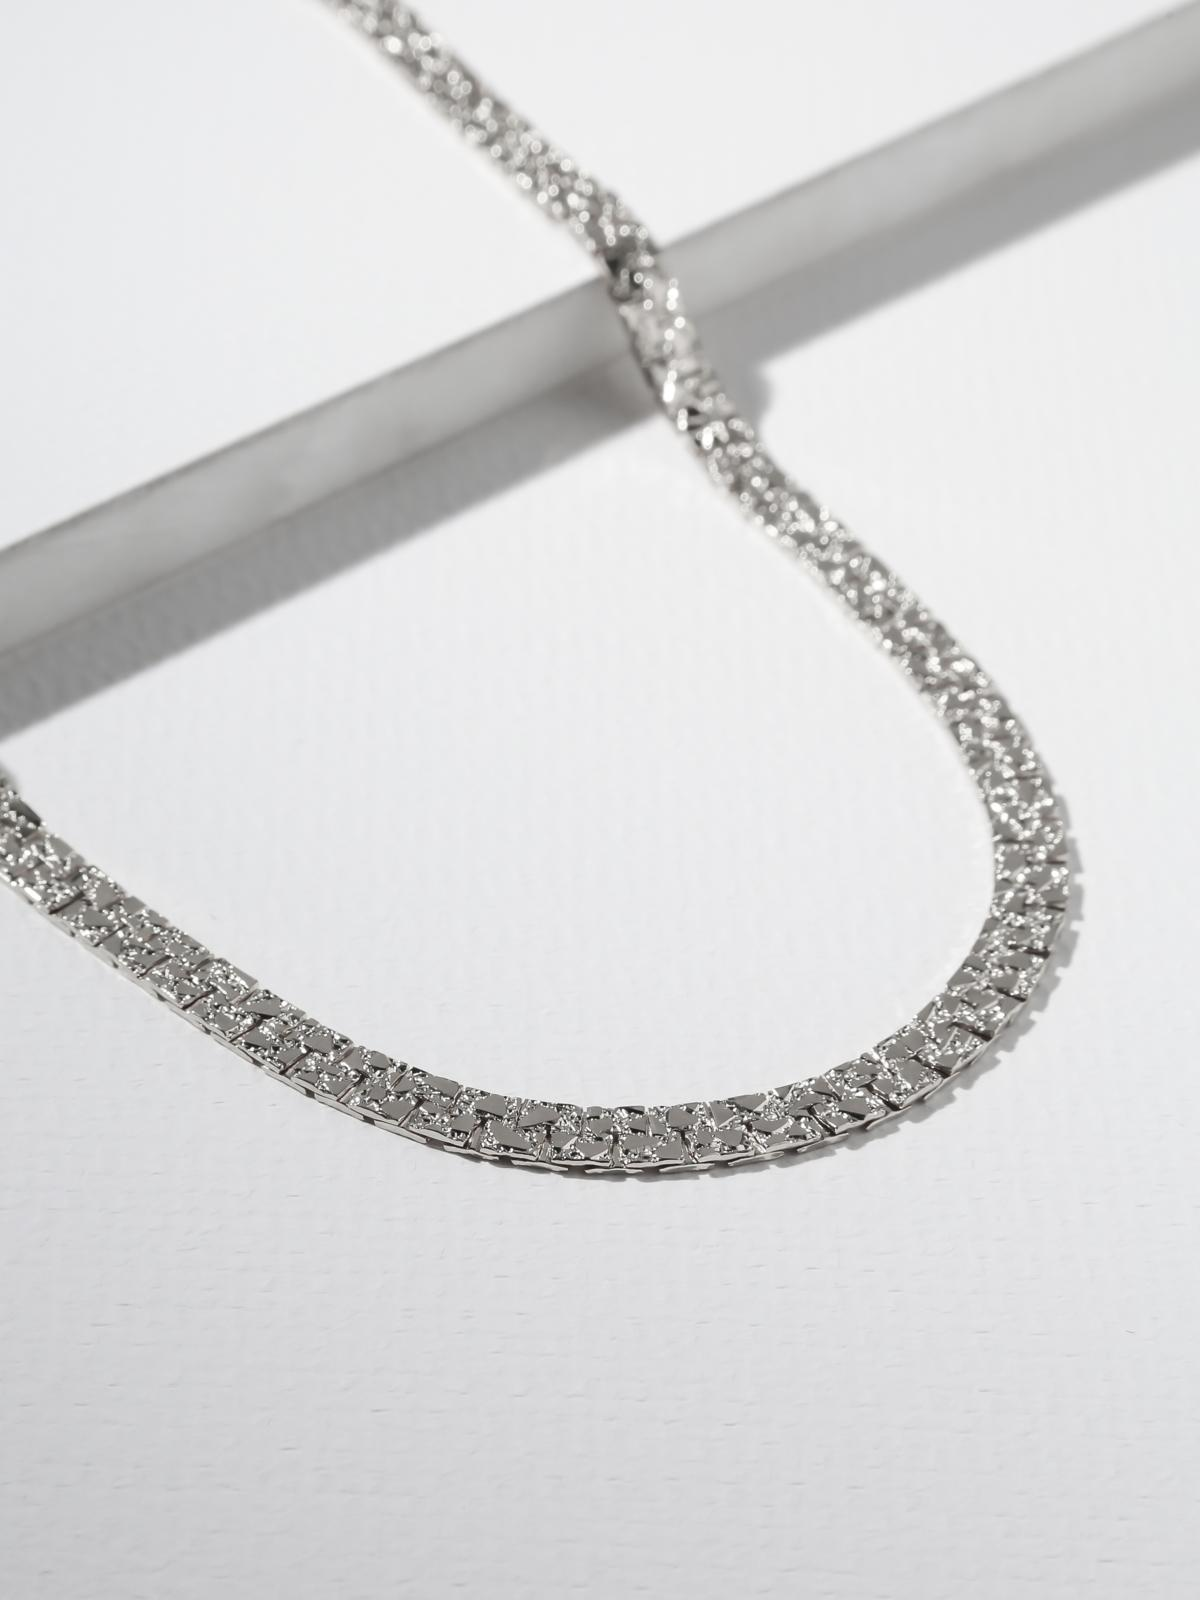 The Nicki Chain Silver